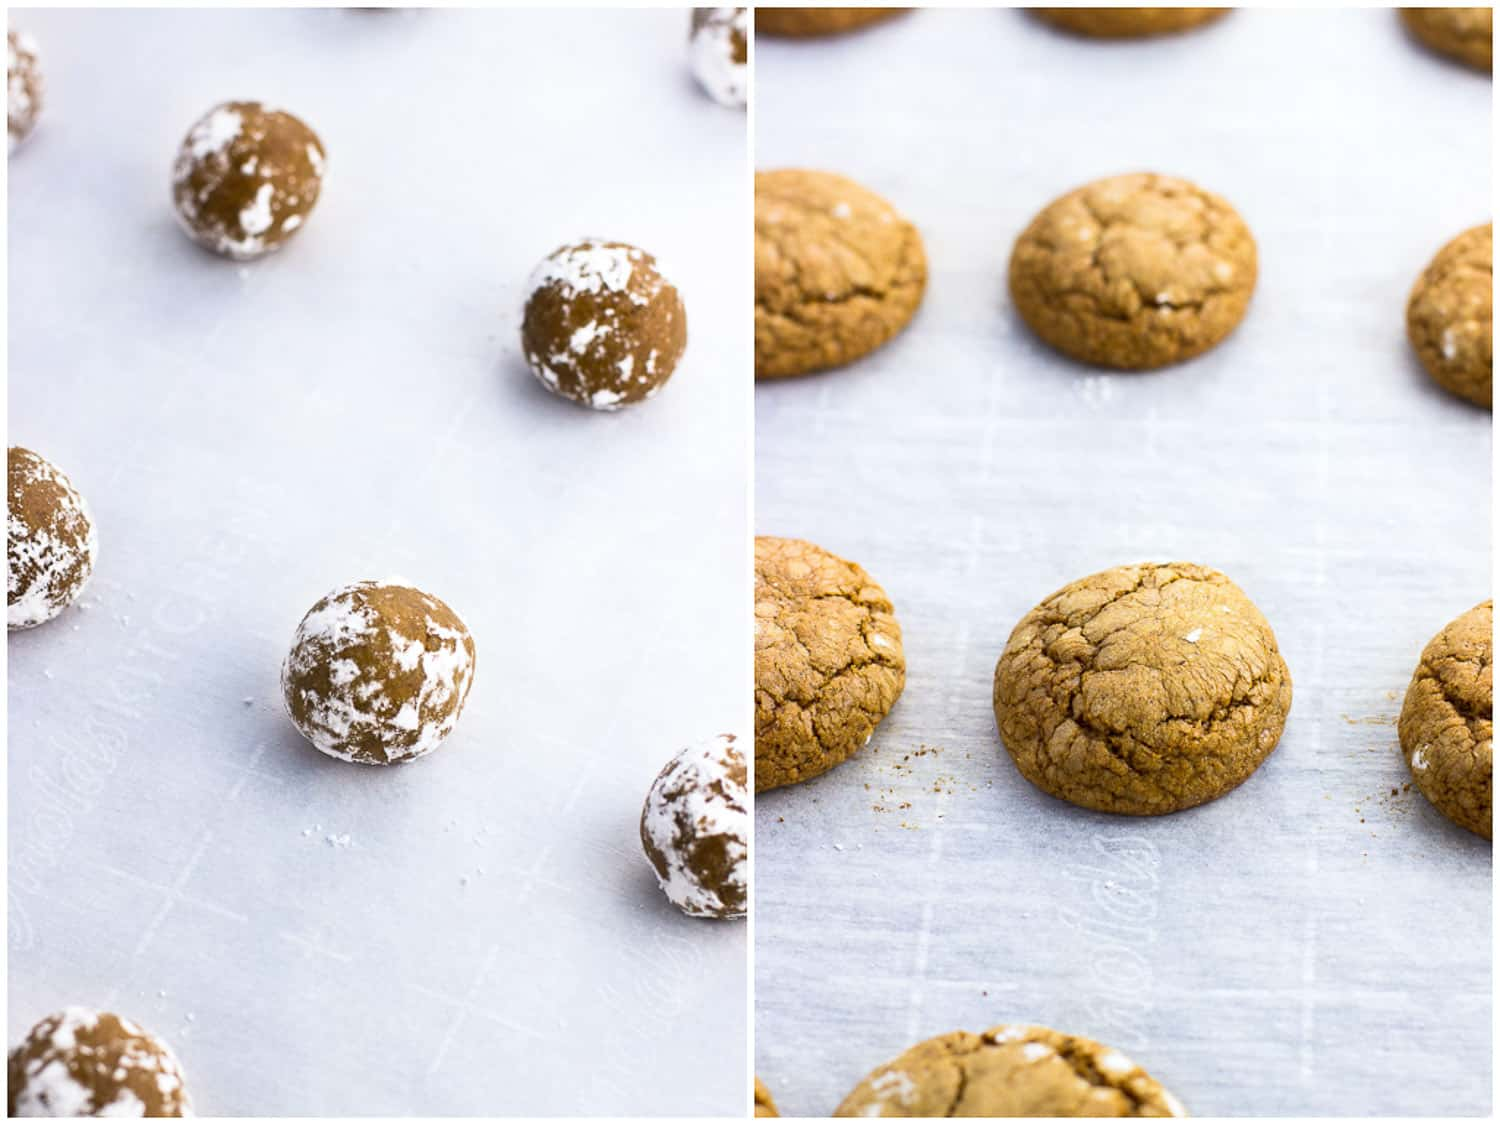 A side-by-side image collage of cookie dough balls on a parchment-lined baking sheet before baking (left) and after (right)